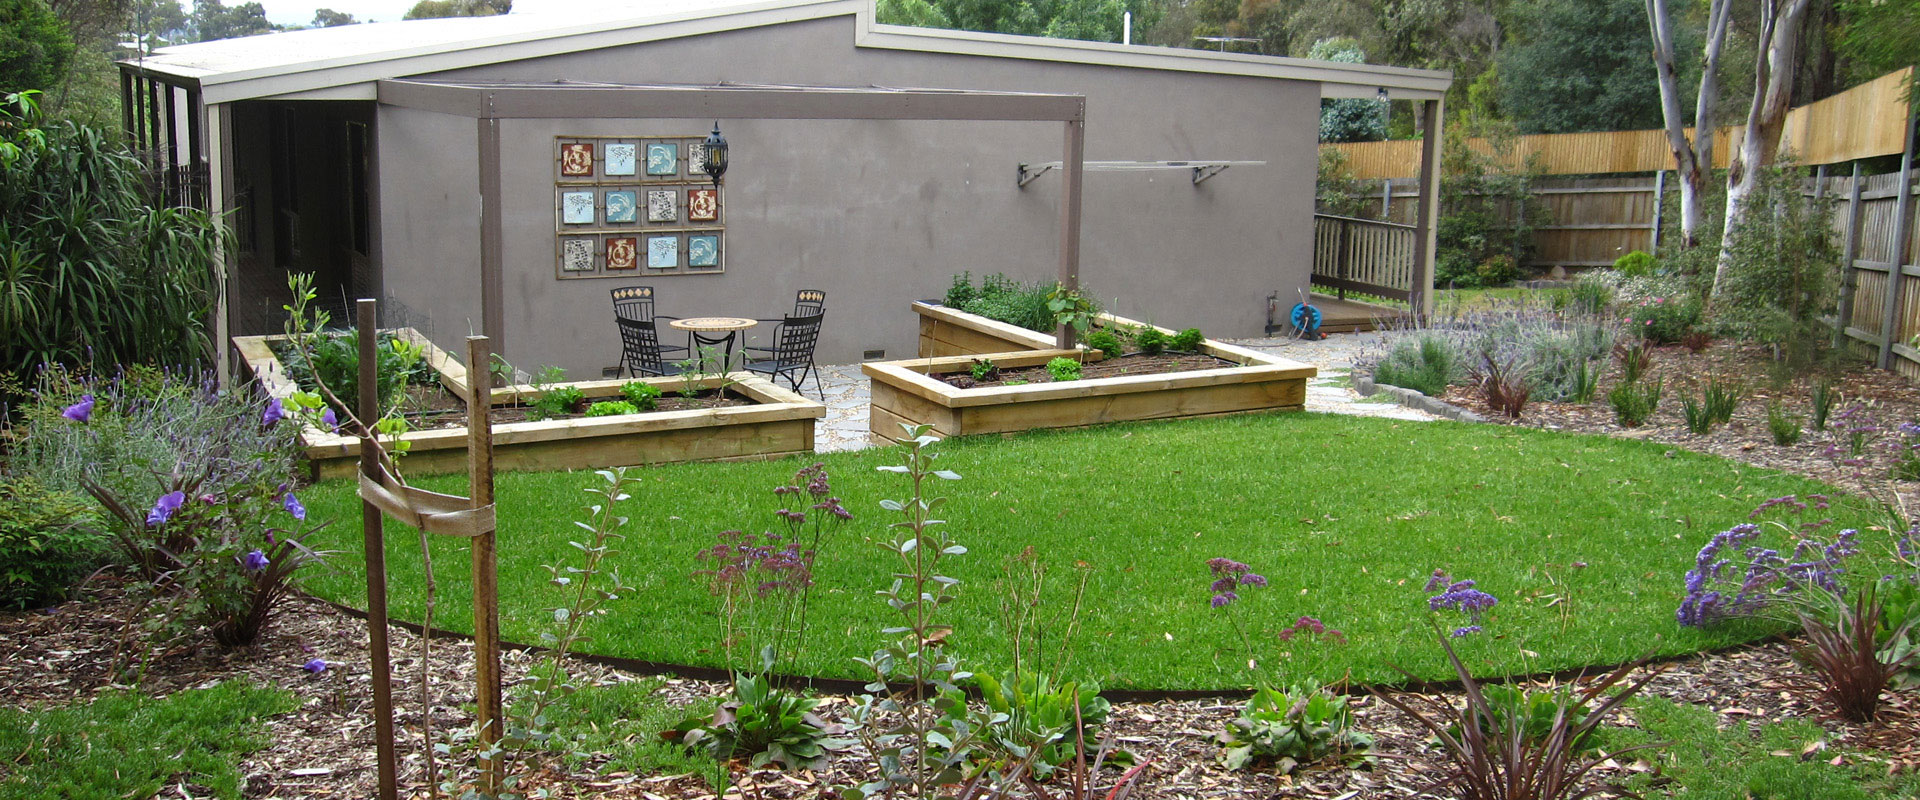 A neglected backyard is now a productive living space